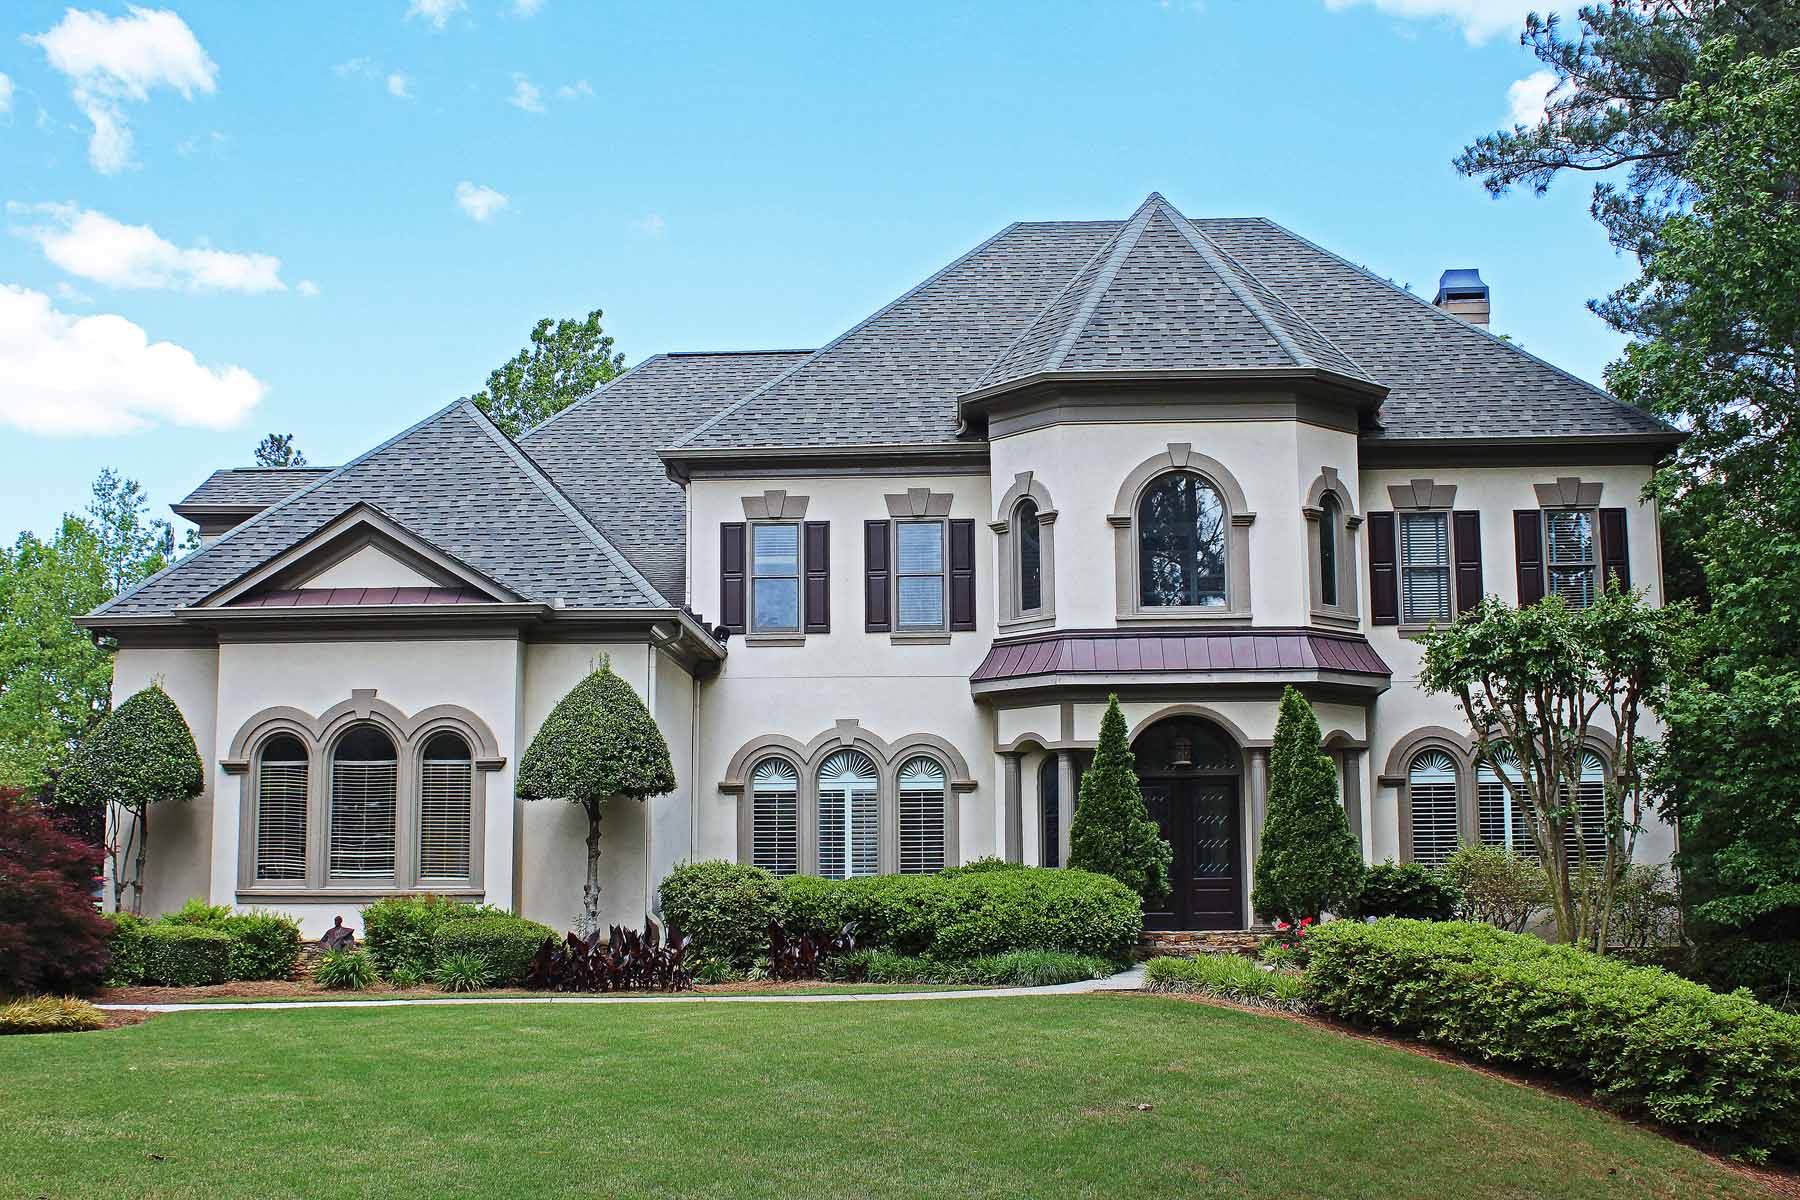 Casa Unifamiliar por un Venta en Magnificent Estate With Beautiful Outdoor Entertaining 1006 Tullamore Place Alpharetta, Georgia, 30022 Estados Unidos